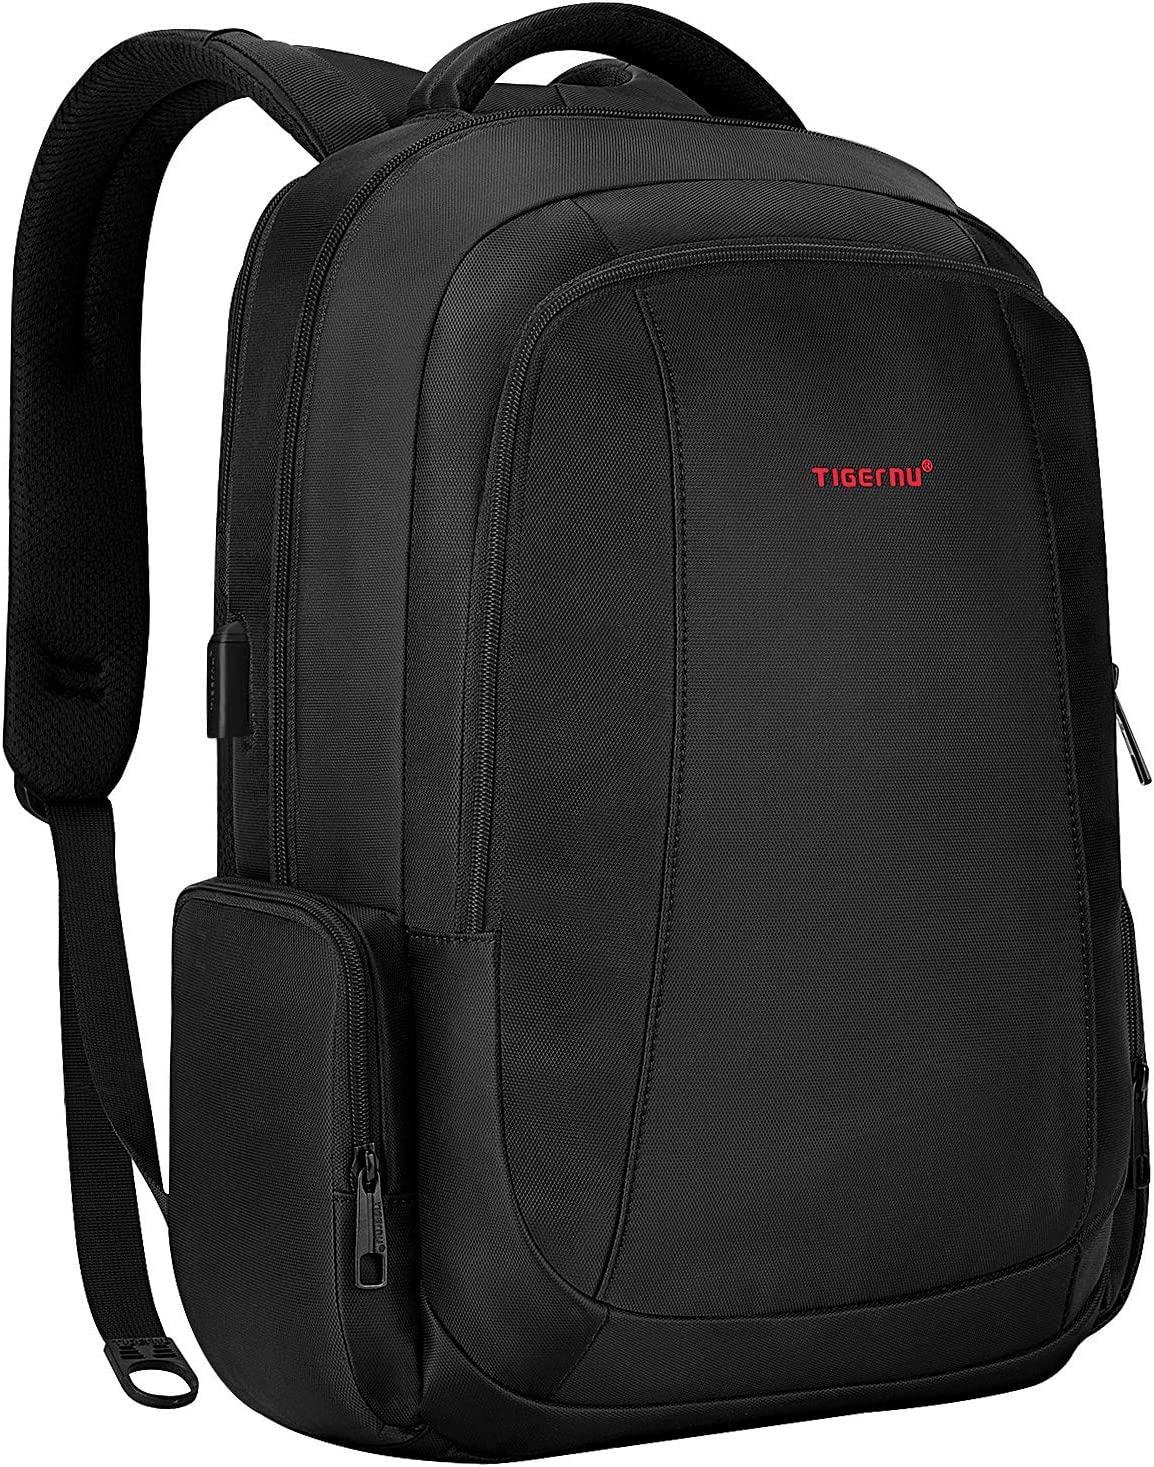 Amazon.com: Laptop Backpack Tigernu Business Computer Backpacks Durable Water Resistant Slim Anti Theft Travel Bag with USB Charging For Men and Women 15.6 Inch (Black): Computers & Accessories